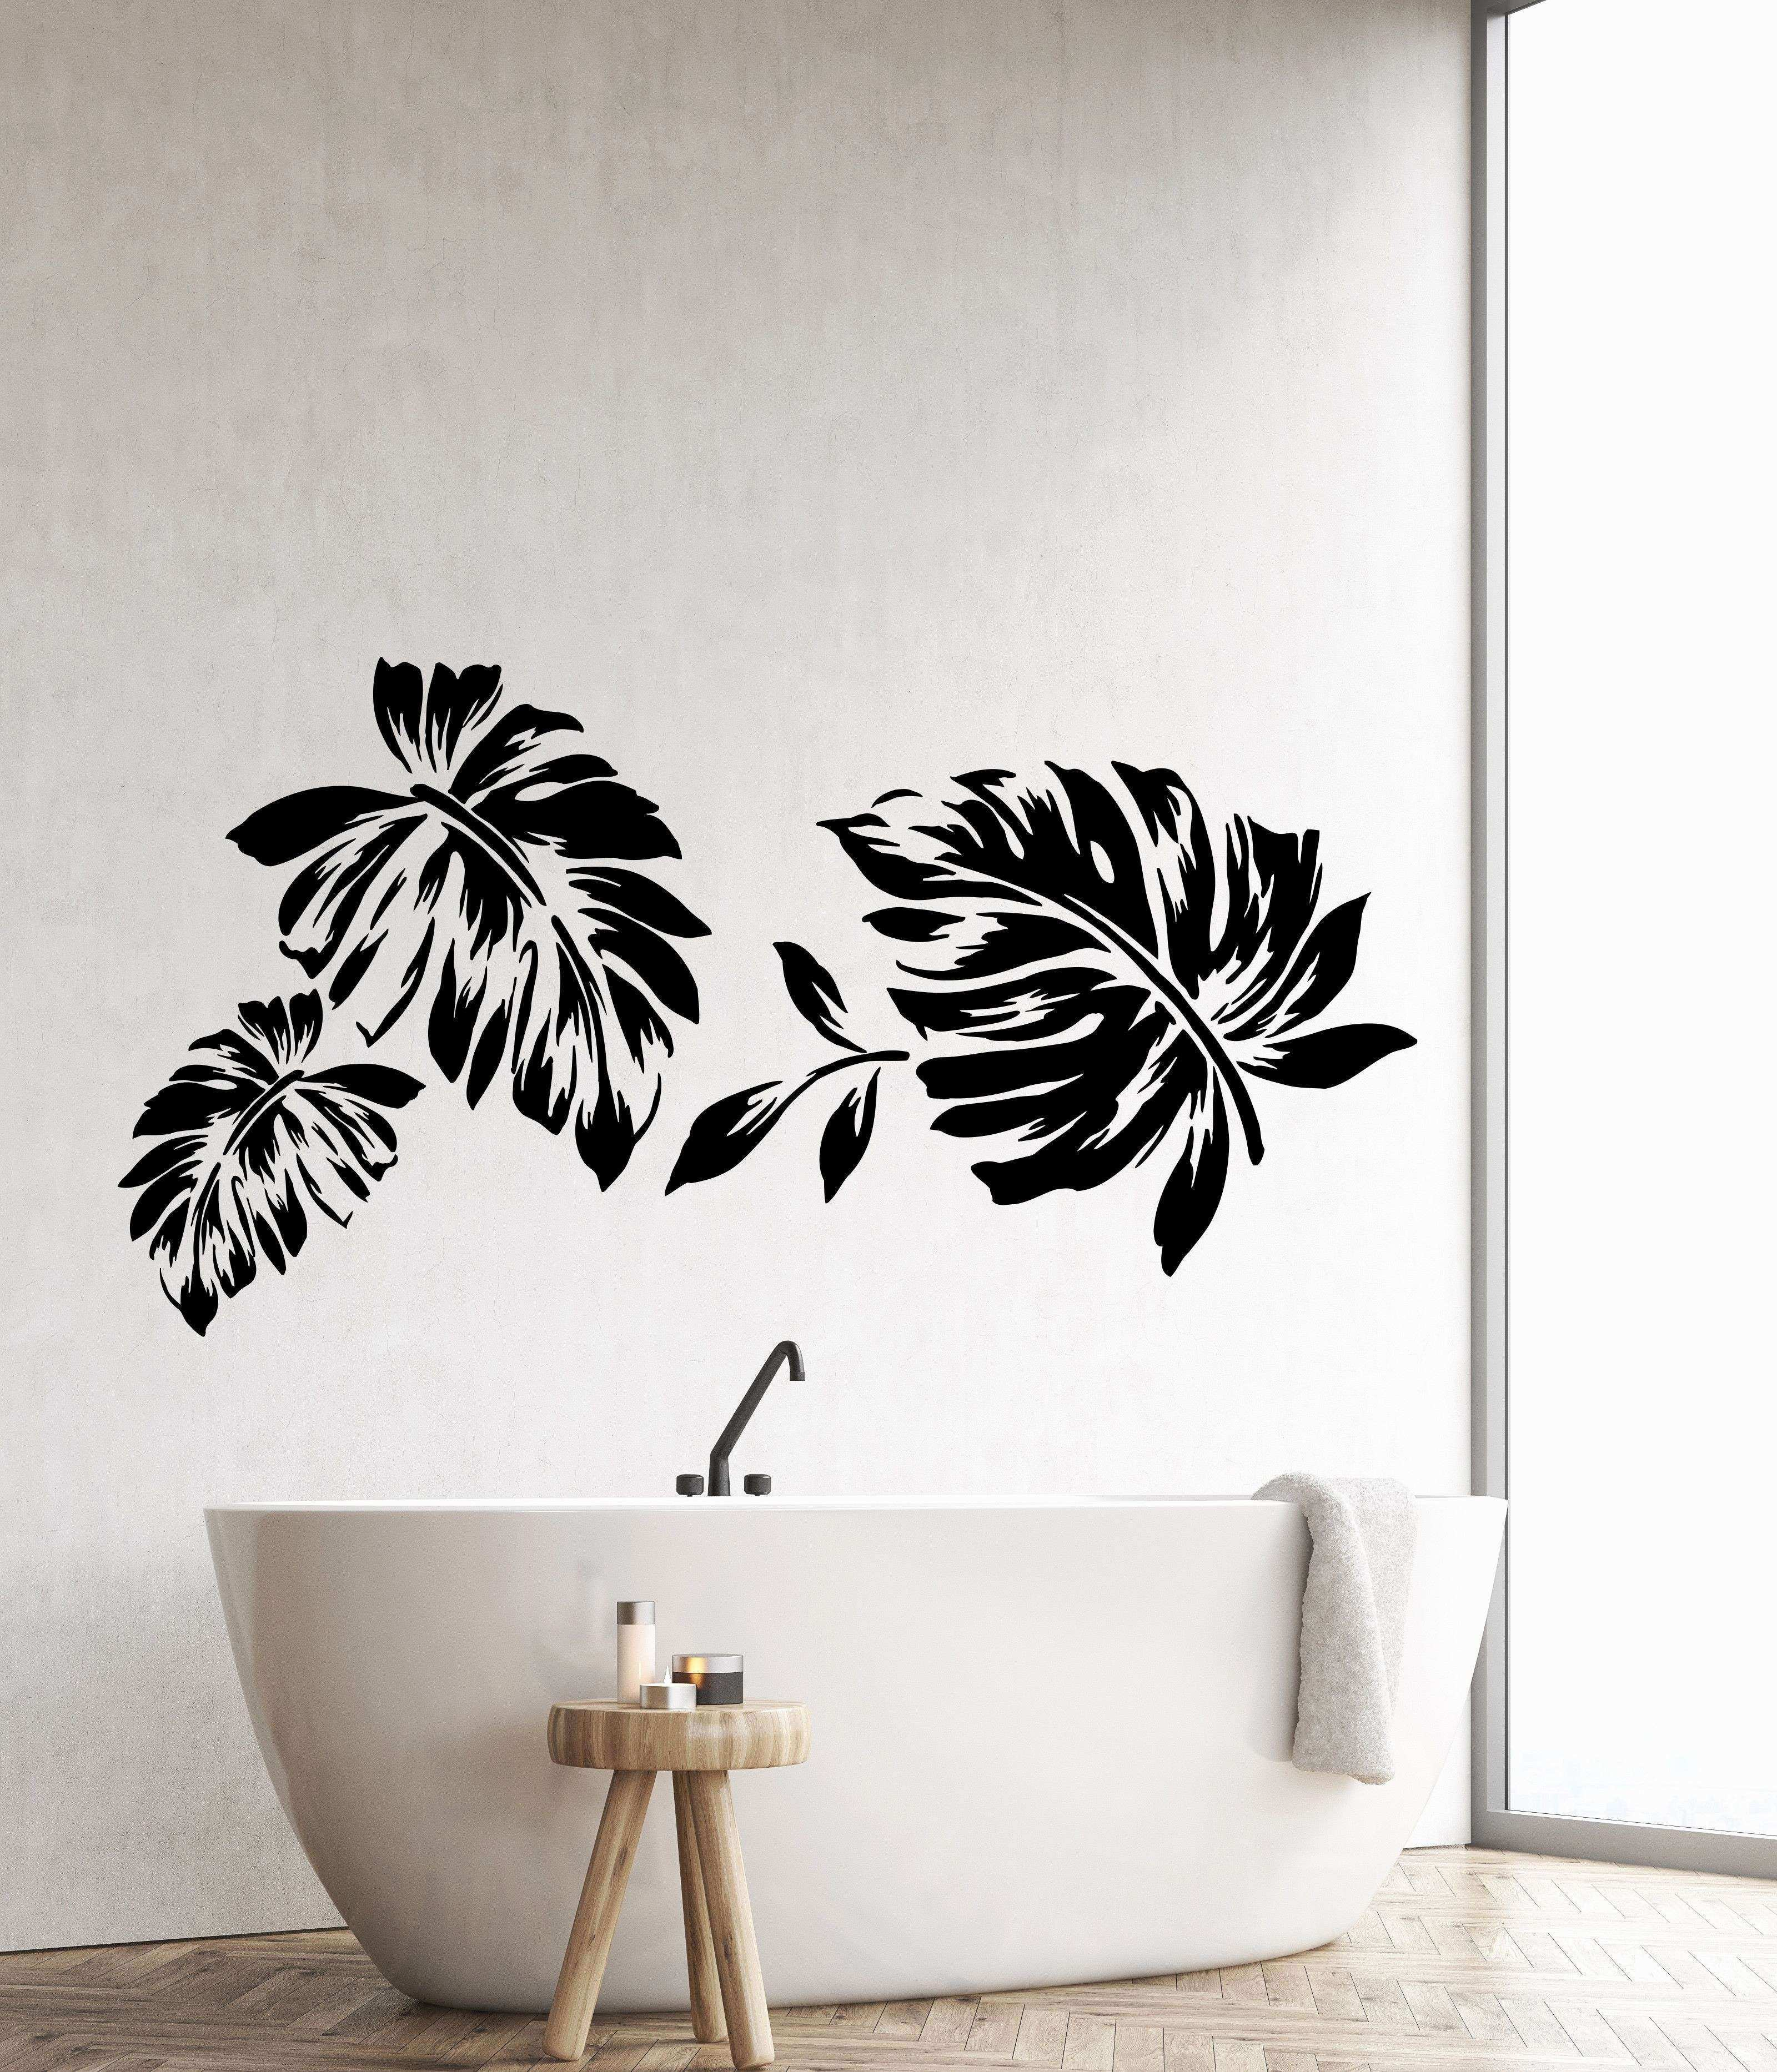 30 Awesome Spanish Wall Decor